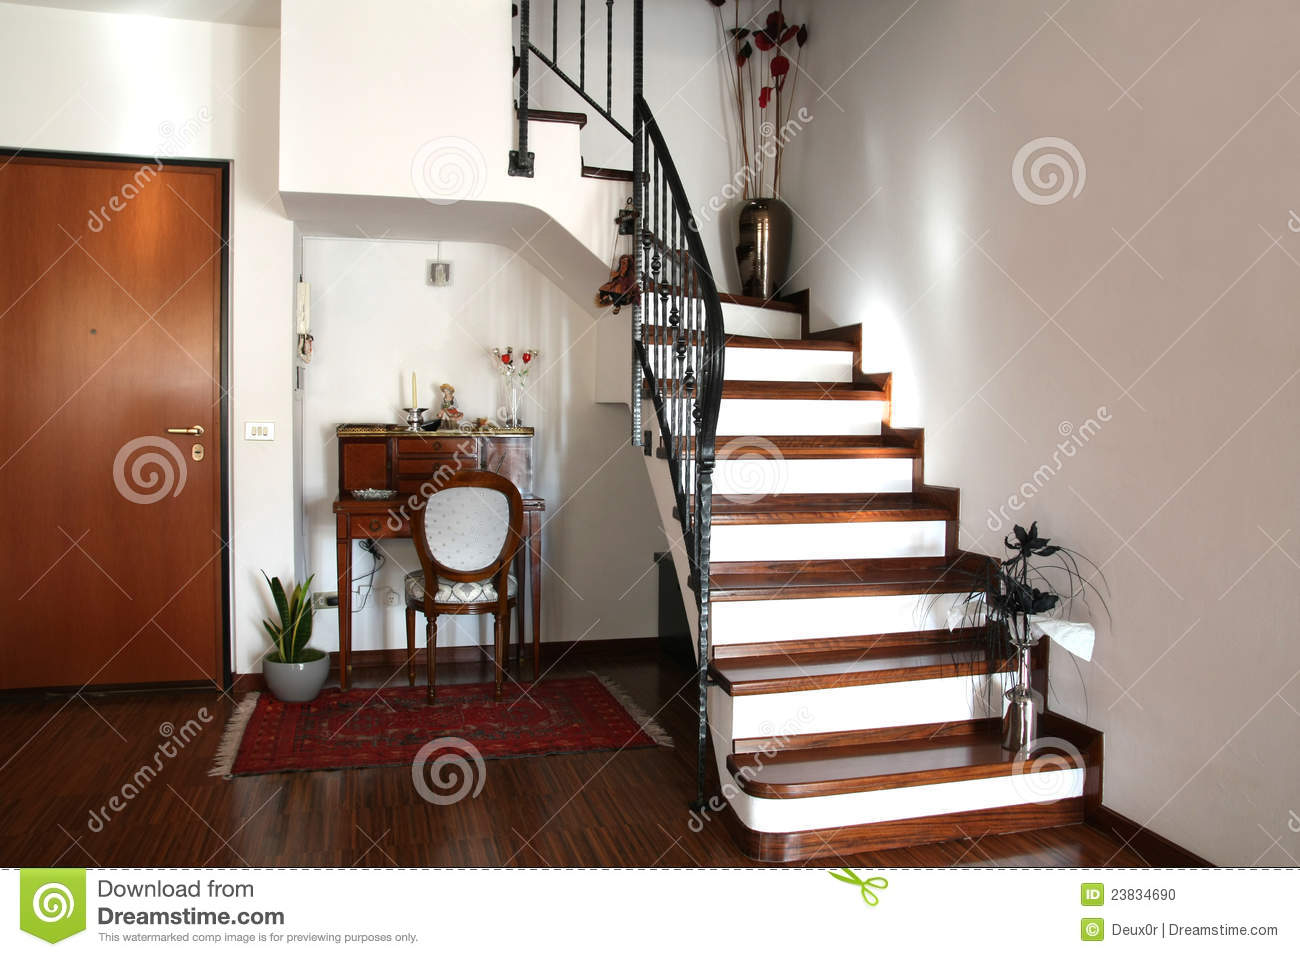 Interior Decoration Of A Room With Stairs And Desk Stock